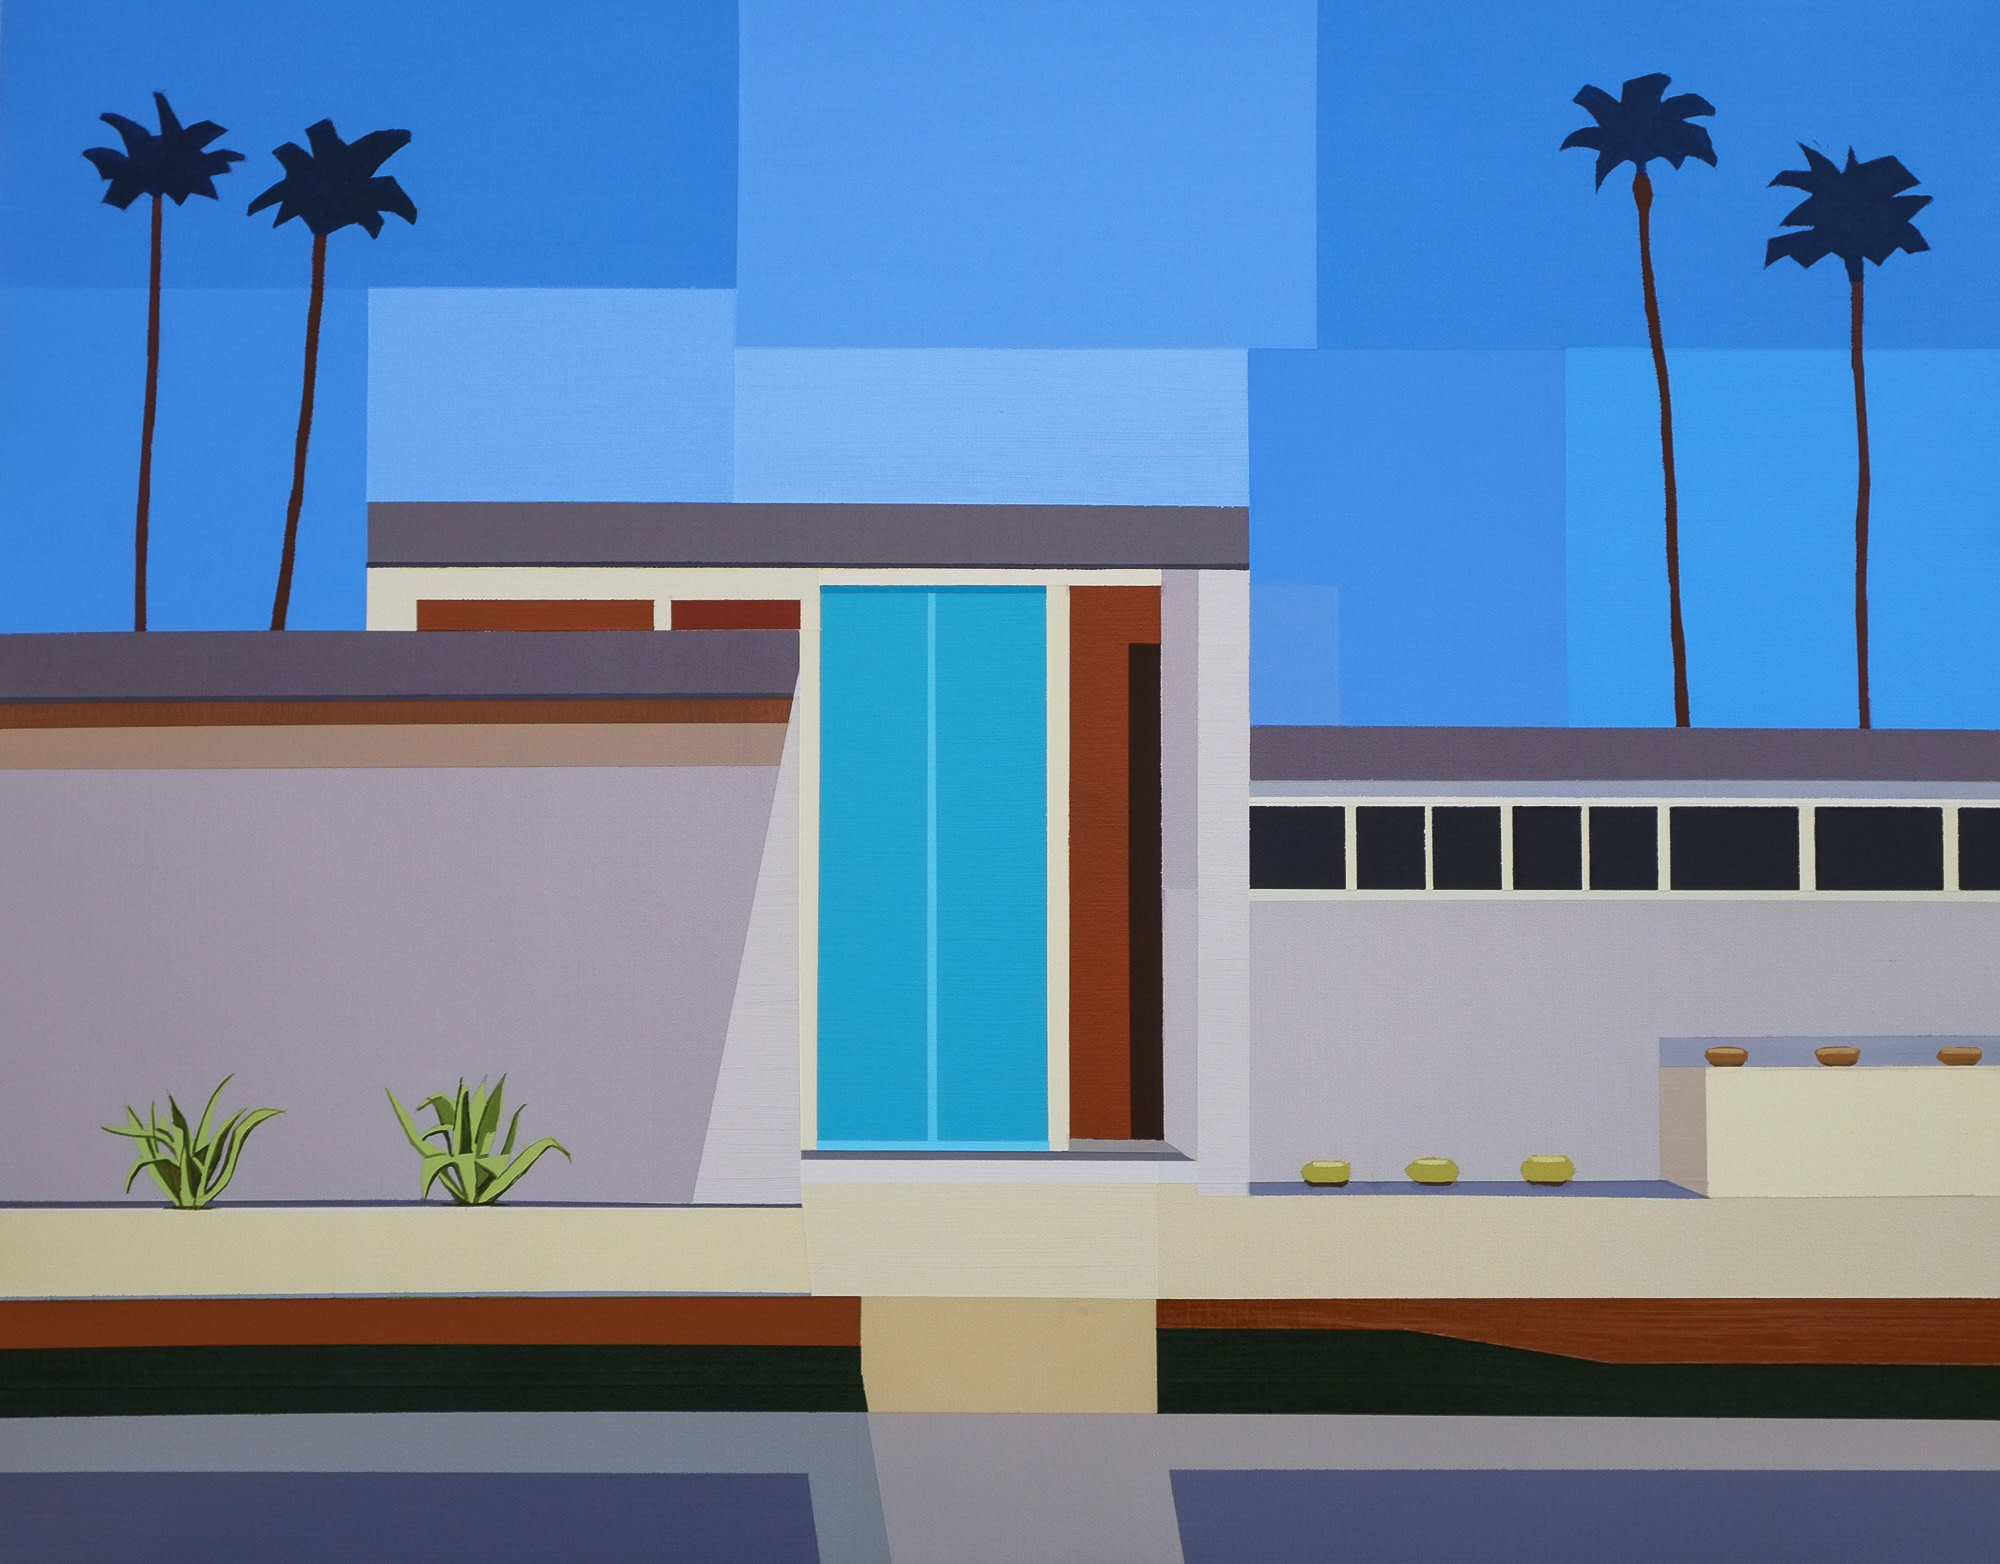 "<span class=""link fancybox-details-link""><a href=""/exhibitions/42/works/artworks3191/"">View Detail Page</a></span><div class=""artist""><strong>Andy Burgess</strong></div><div class=""title""><em>Palm Springs House III</em>, 2017</div><div class=""signed_and_dated"">Signed, dated recto</div><div class=""medium"">Acrylic on Canvas over Panel</div><div class=""dimensions"">Unframed: 22 x 28 in.<br>Framed: 23 1/2 x 29 1/2 in.</div>"